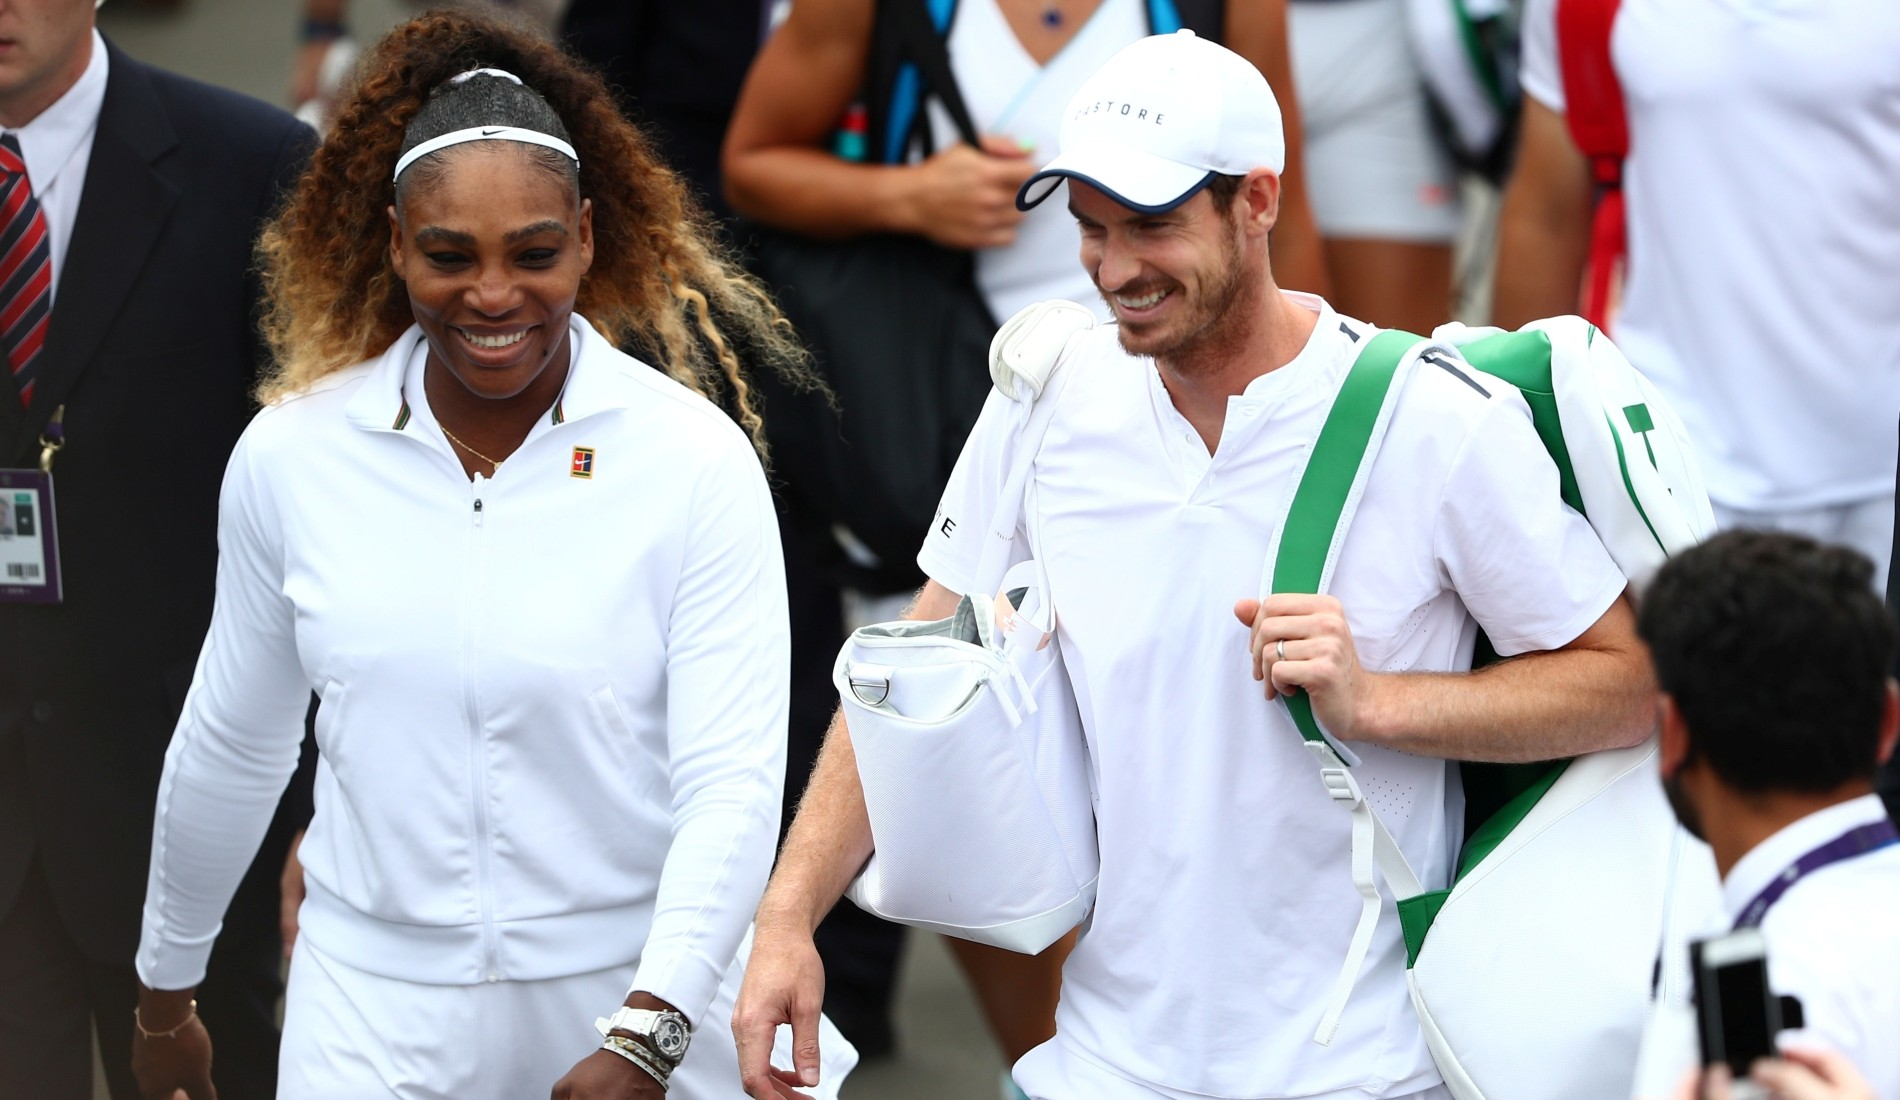 Serena Williams and Andy Murray playing mixed doubles at Wimbledon in 2019